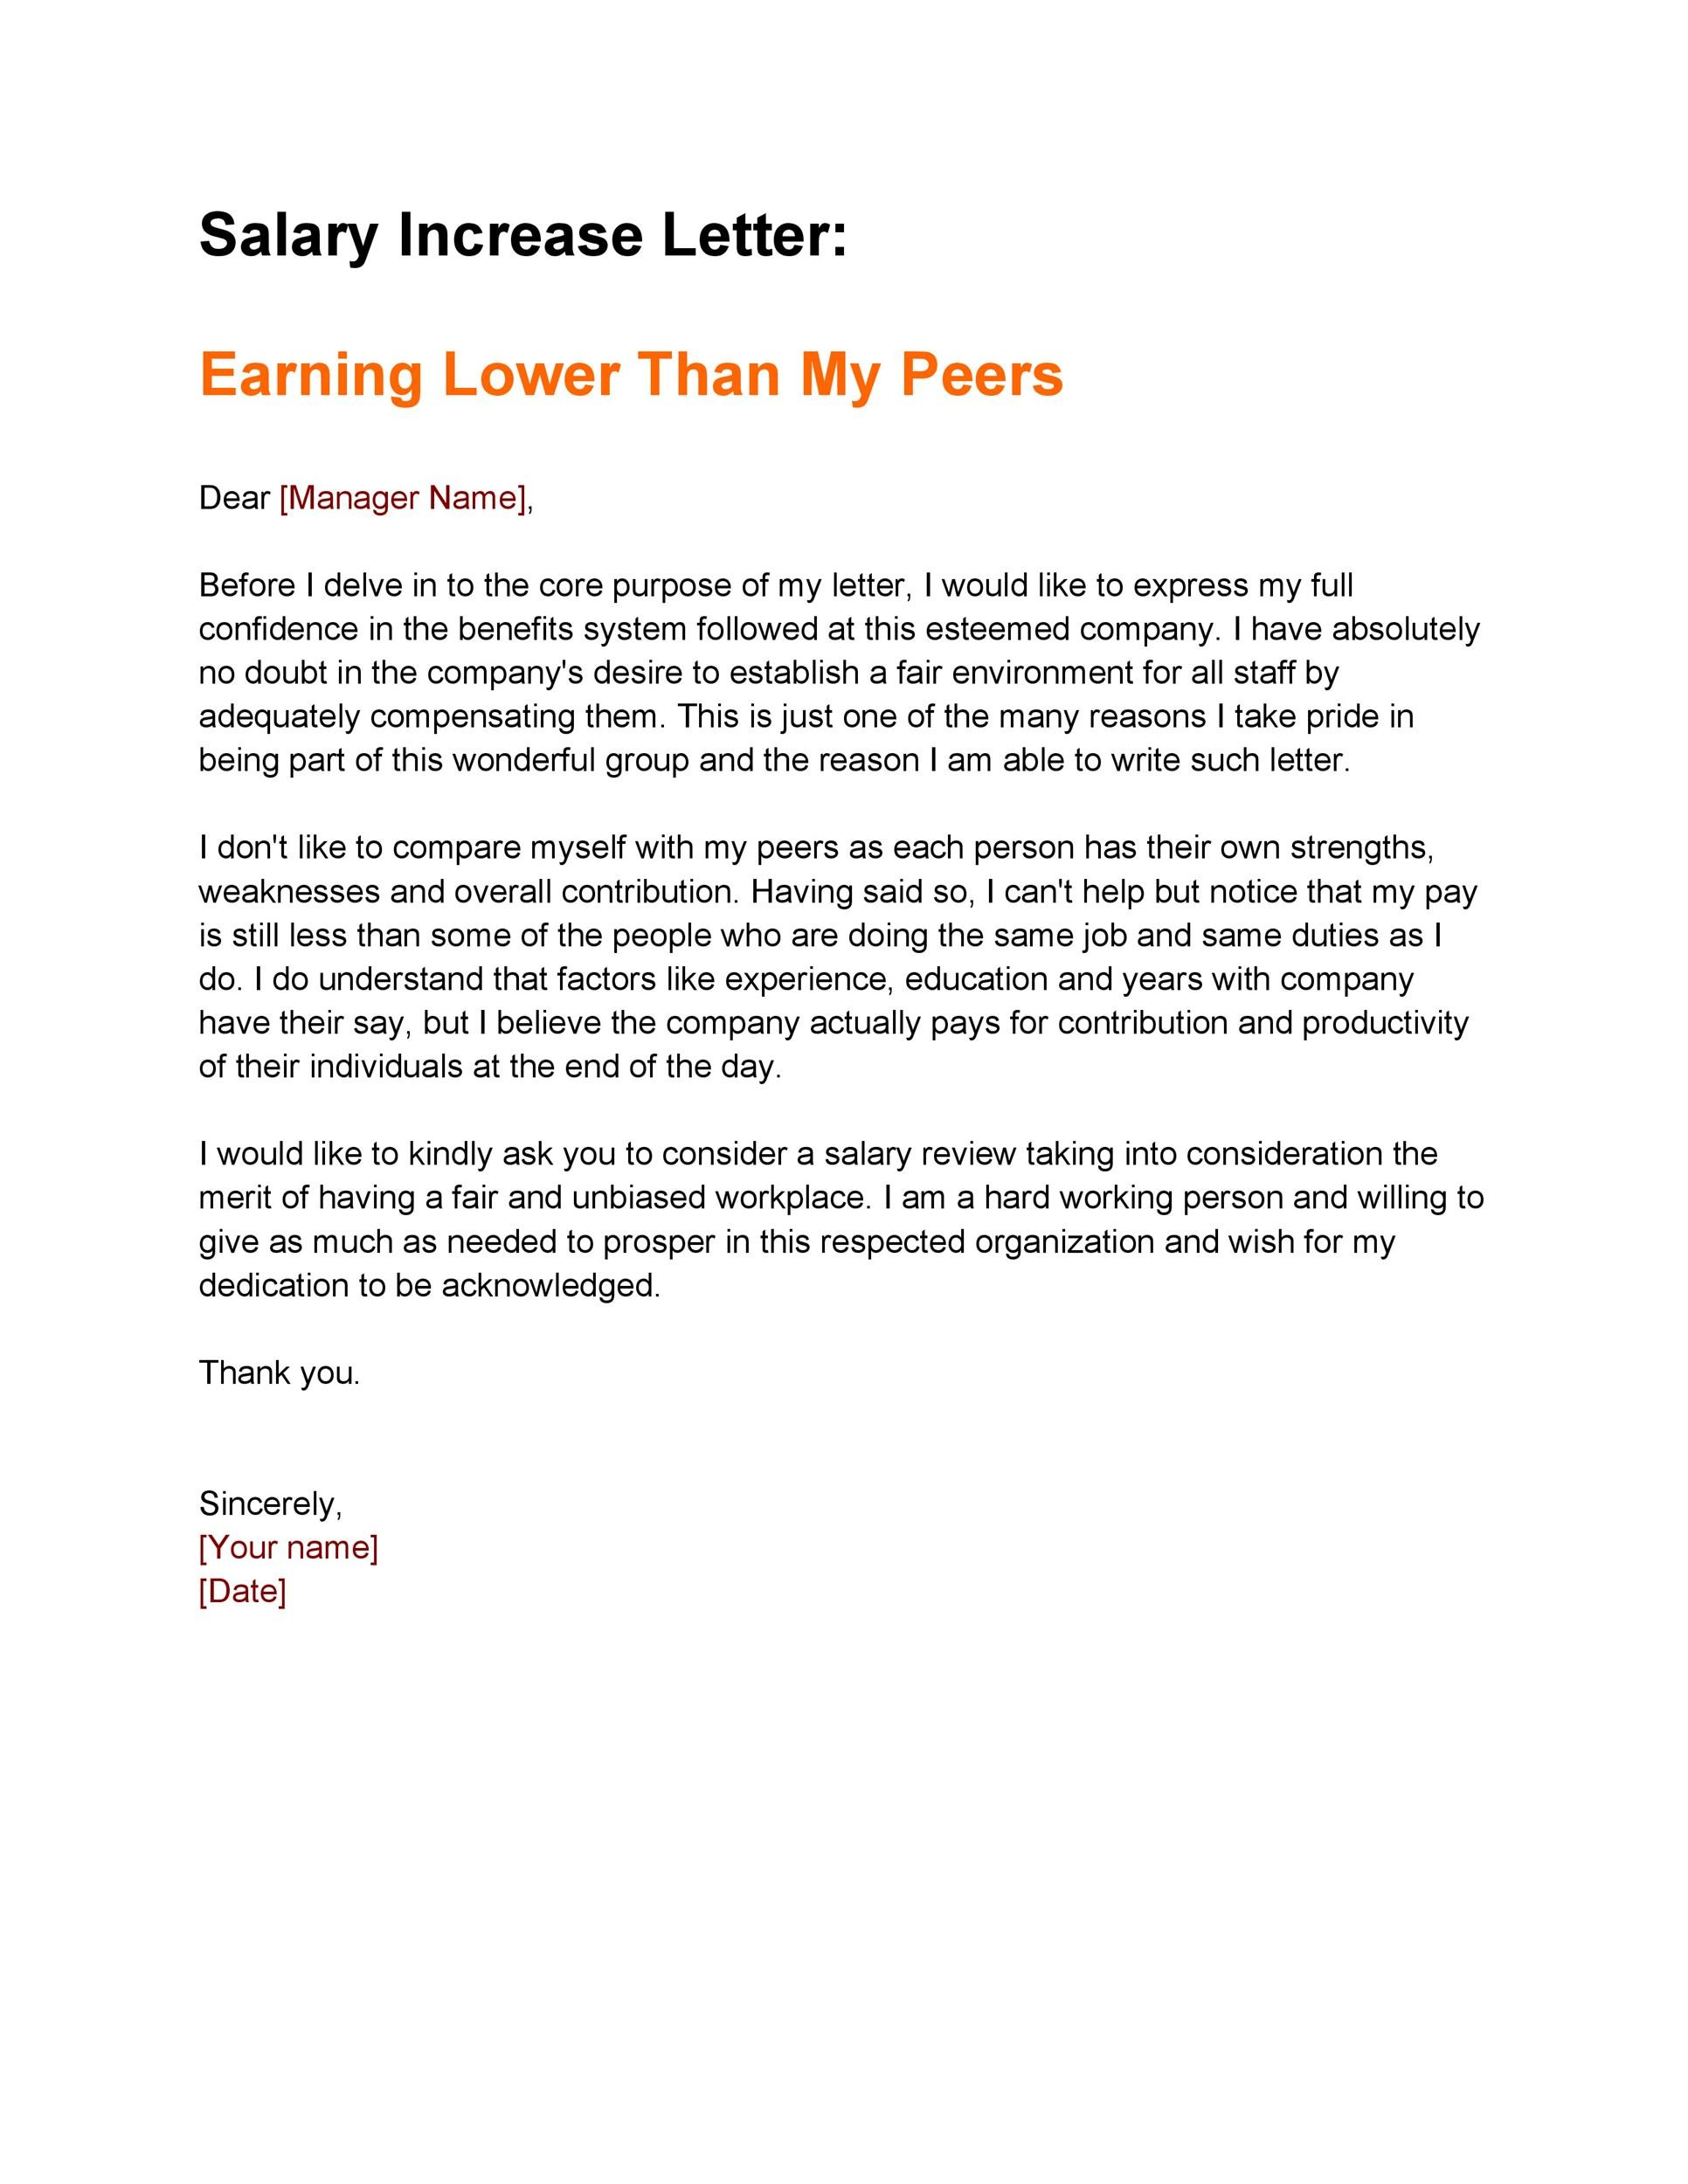 Free salary increase letter 23